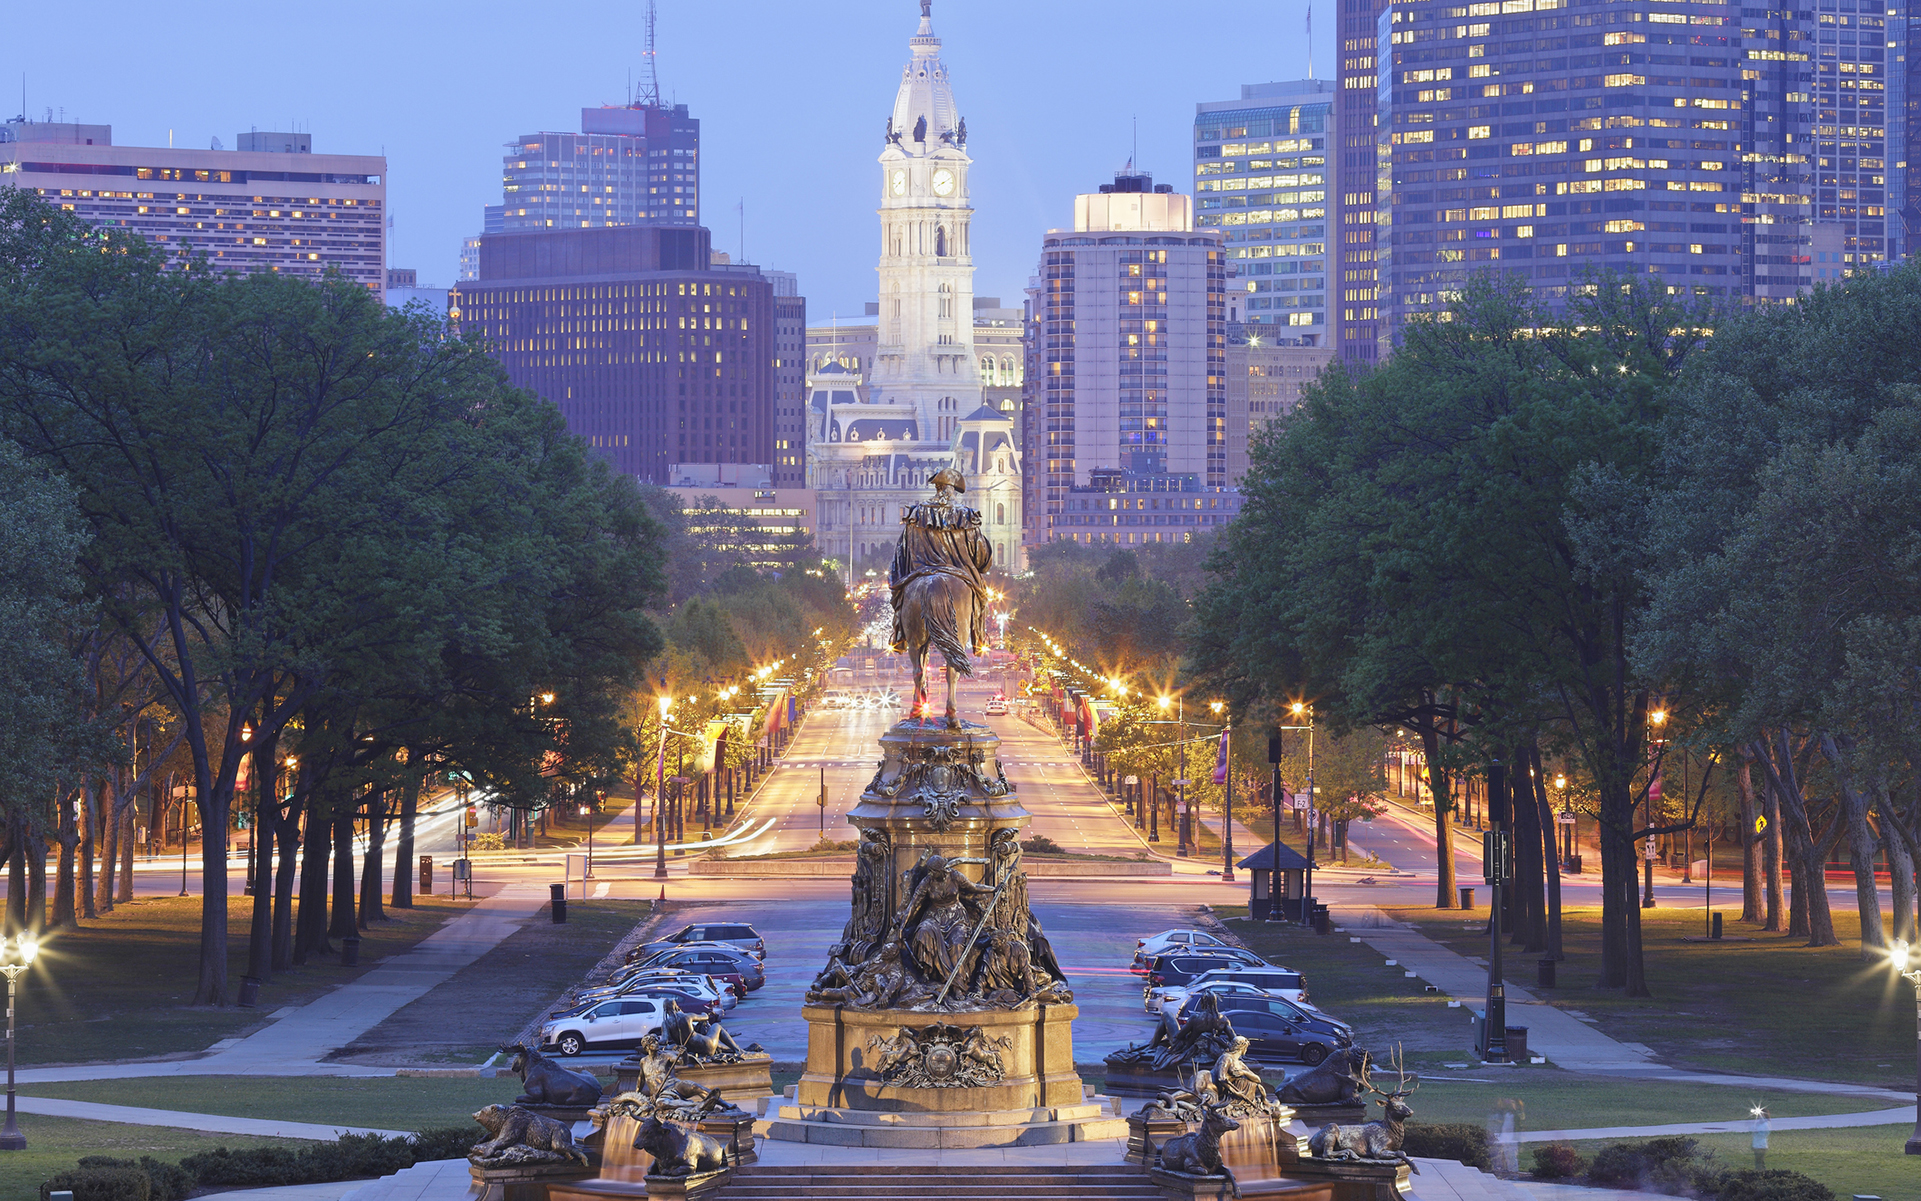 In Pennsylvania, the eight approved universities, most of which are in the greater Philadelphia area, may study the state's current qualifying conditions for cannabis, which include PTSD, AIDS, Crohn's Disease, opioid use disorder and more.